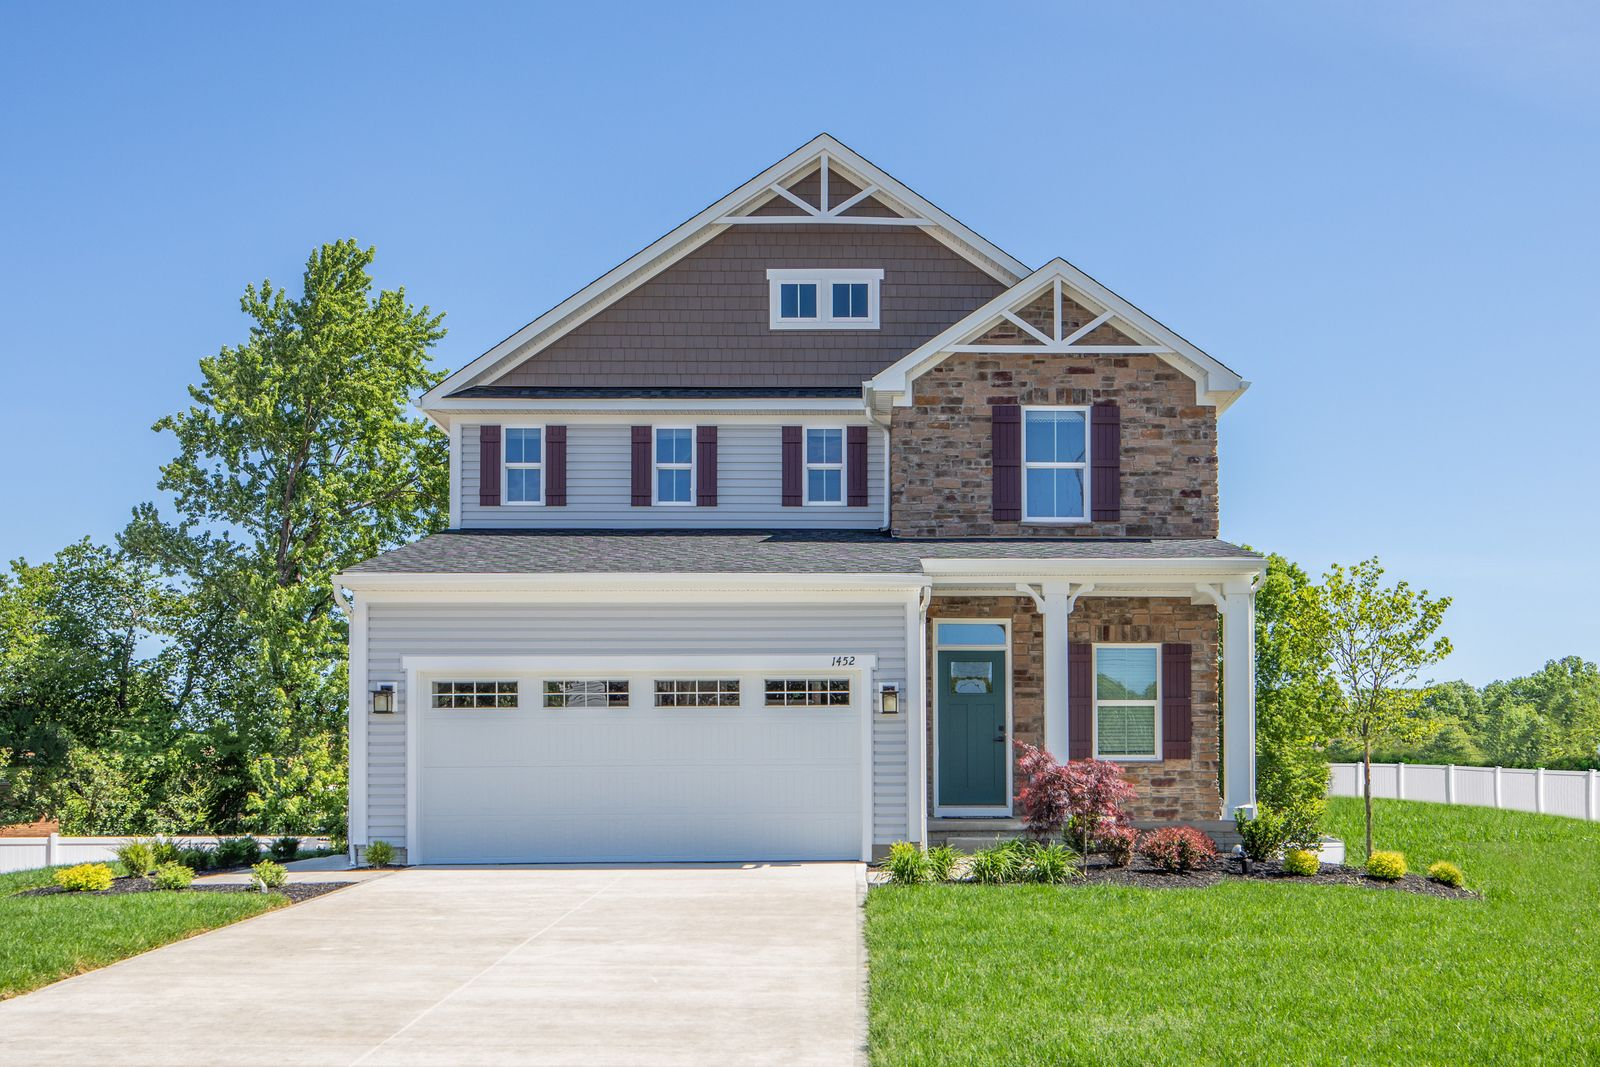 WELCOME HOME TO LEXINGTON PLACE:Peaceful community setting featuring ranch & 2-story homes with available full basements! Wooded & cul-de-sac yards up to 1/3-acre. From the upper $200s.Click here to schedule your visit today!